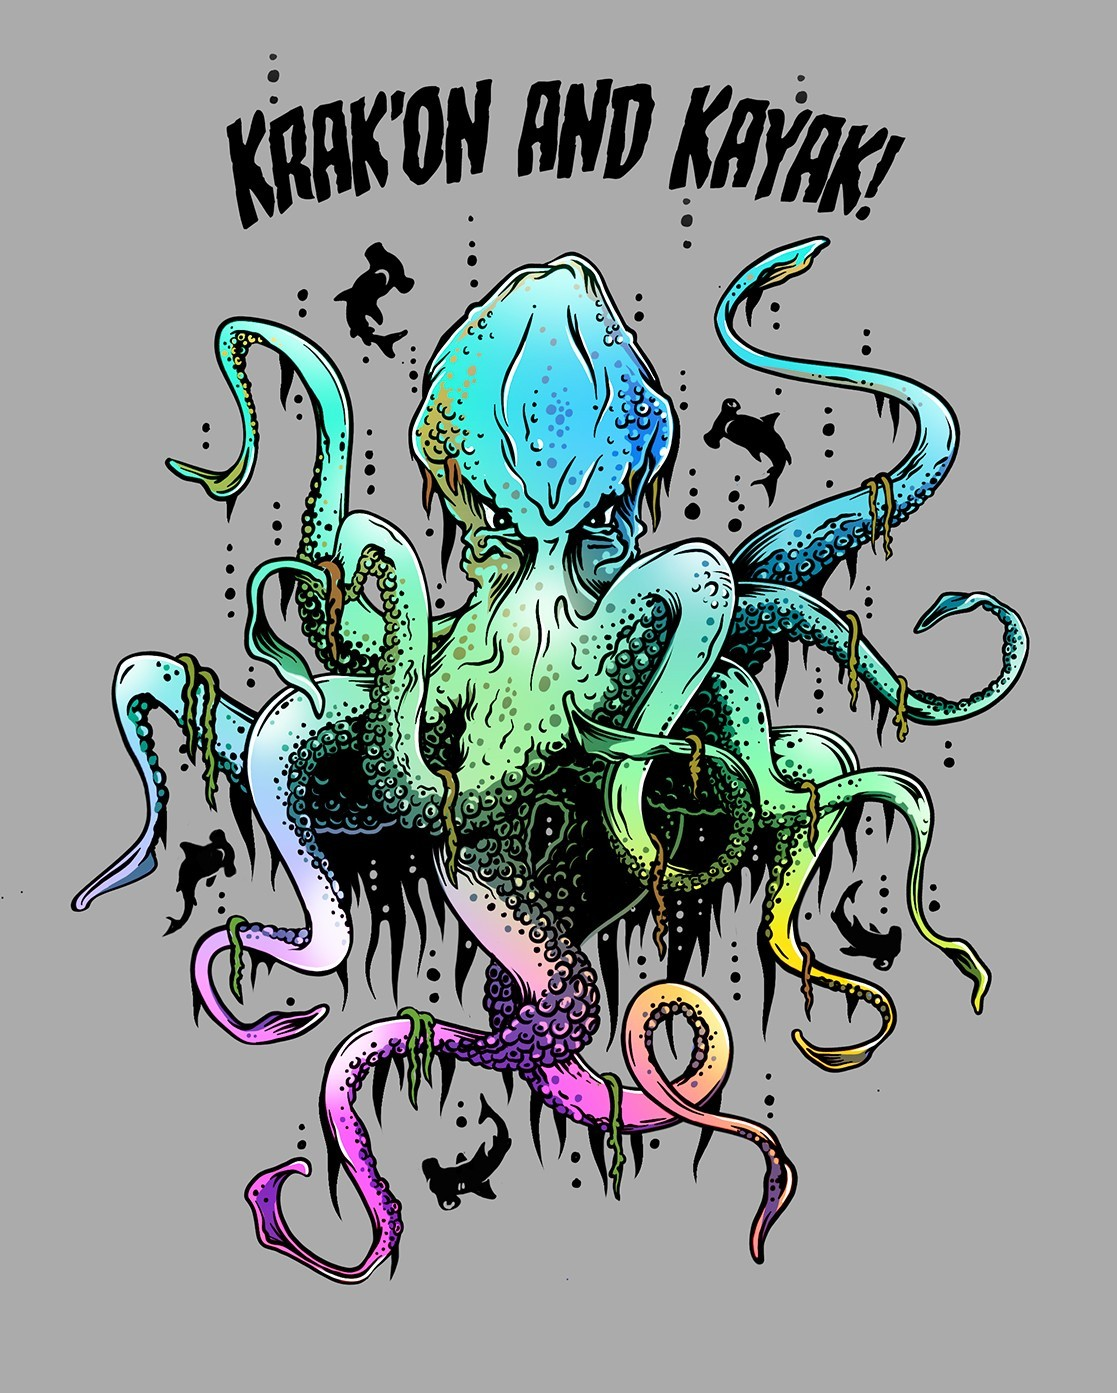 Image of Kevin the Krak'on used on merchandise shirts